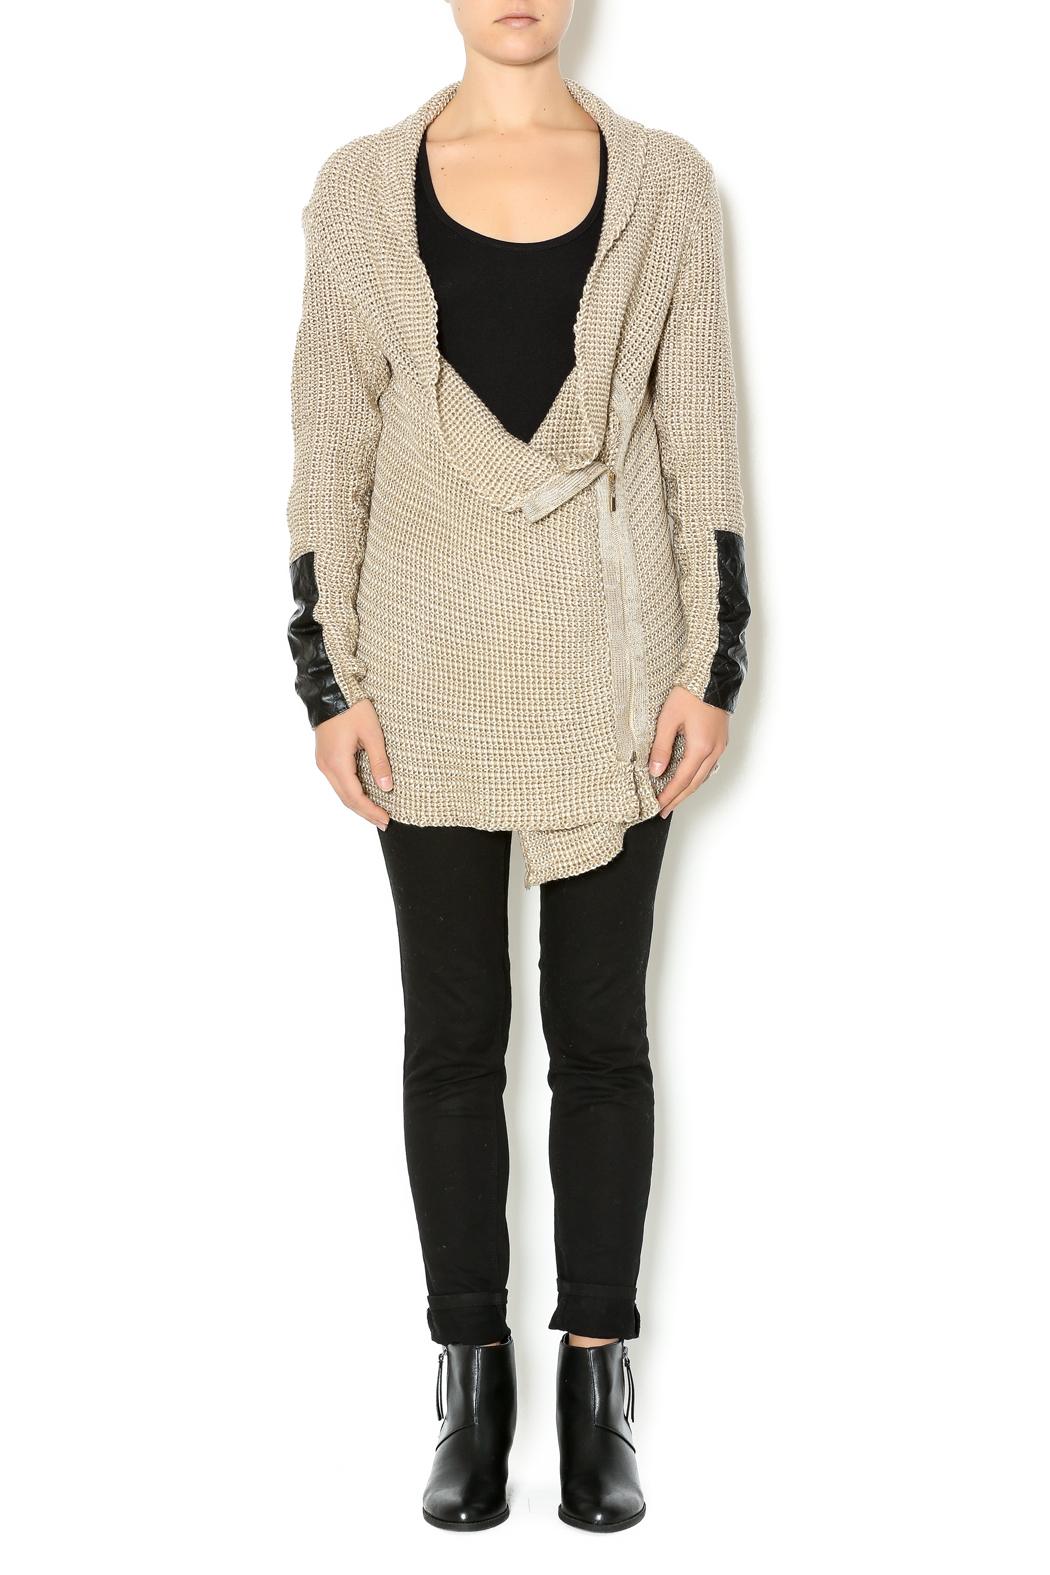 Renee C. Beige Heavy Knit Sweater - Front Full Image